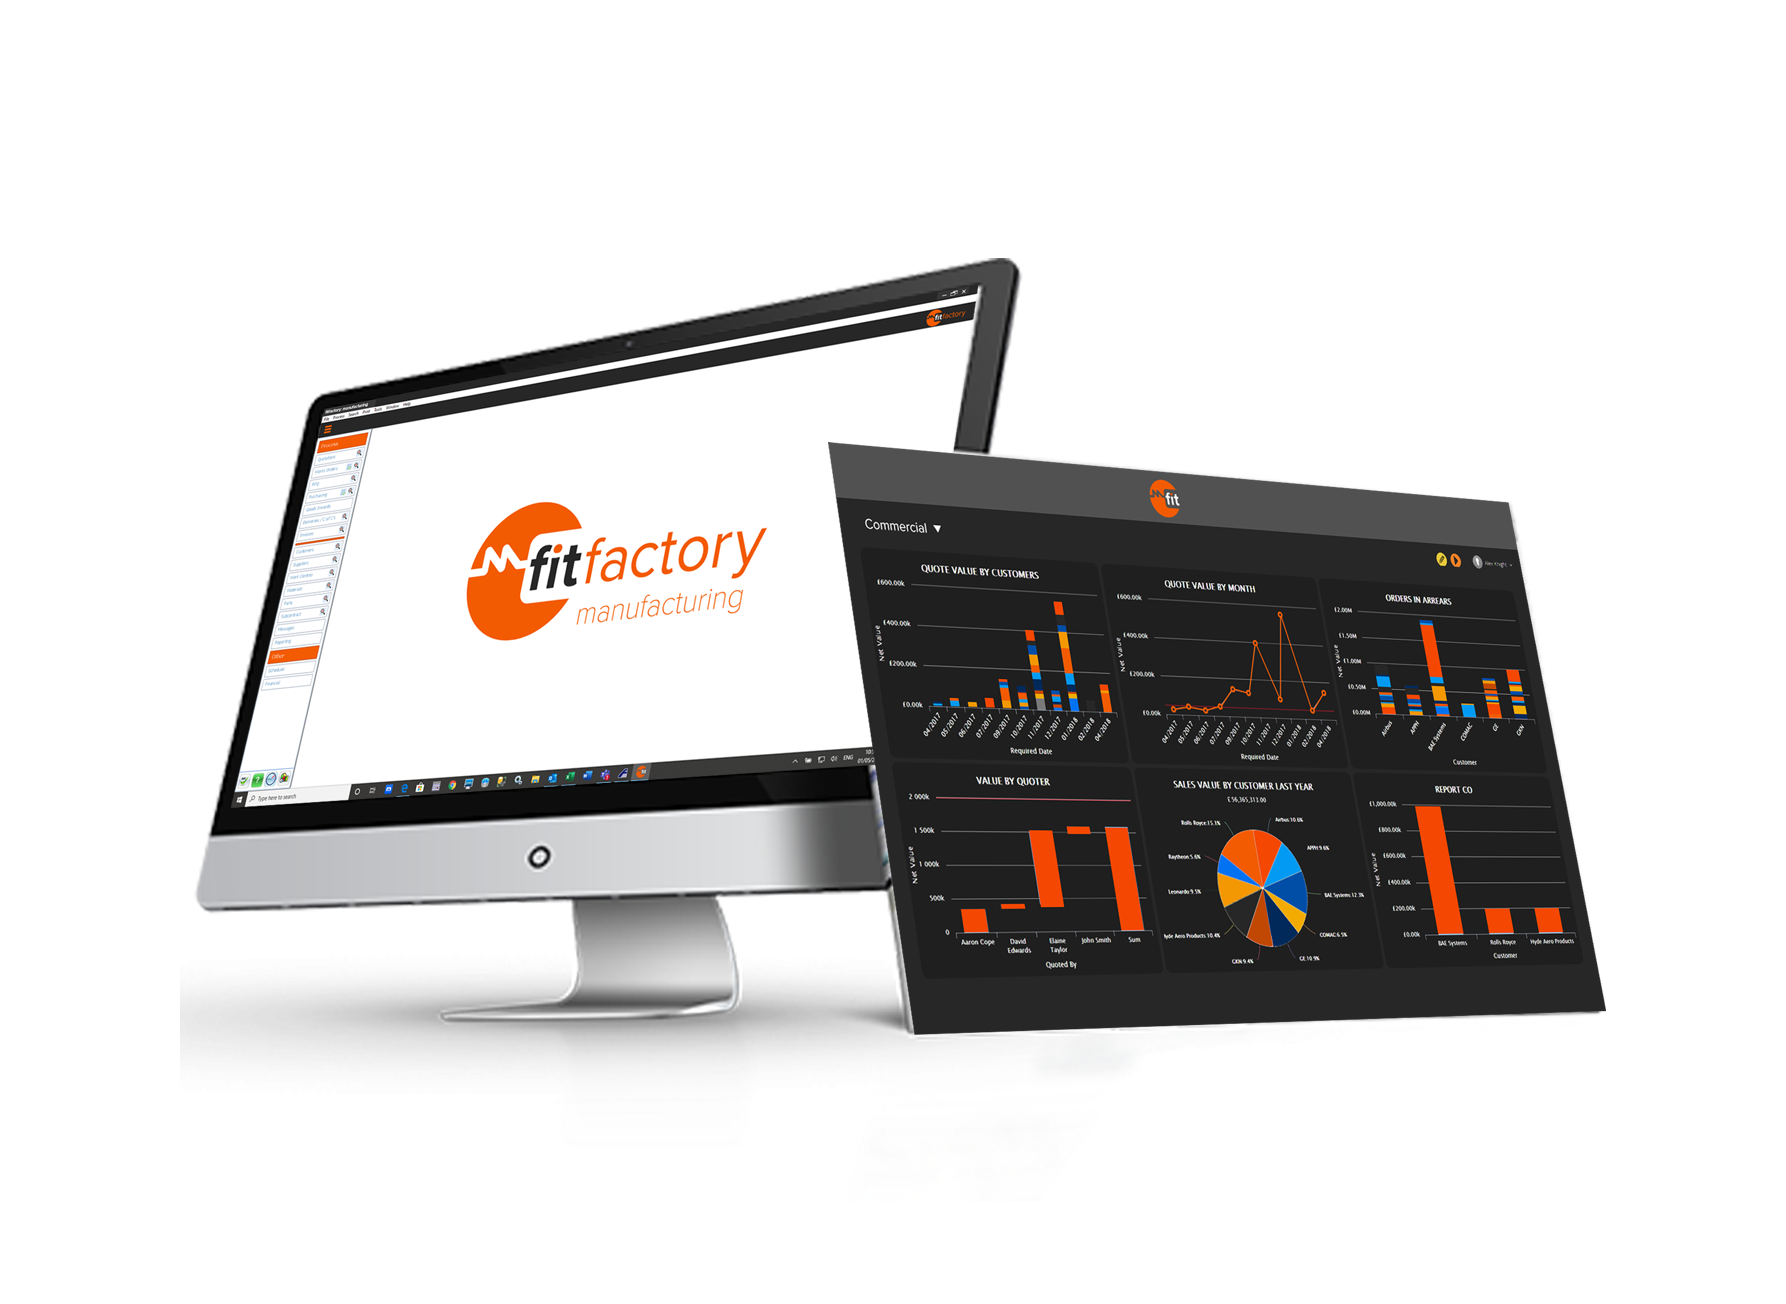 fitfactory manufacturing ERP